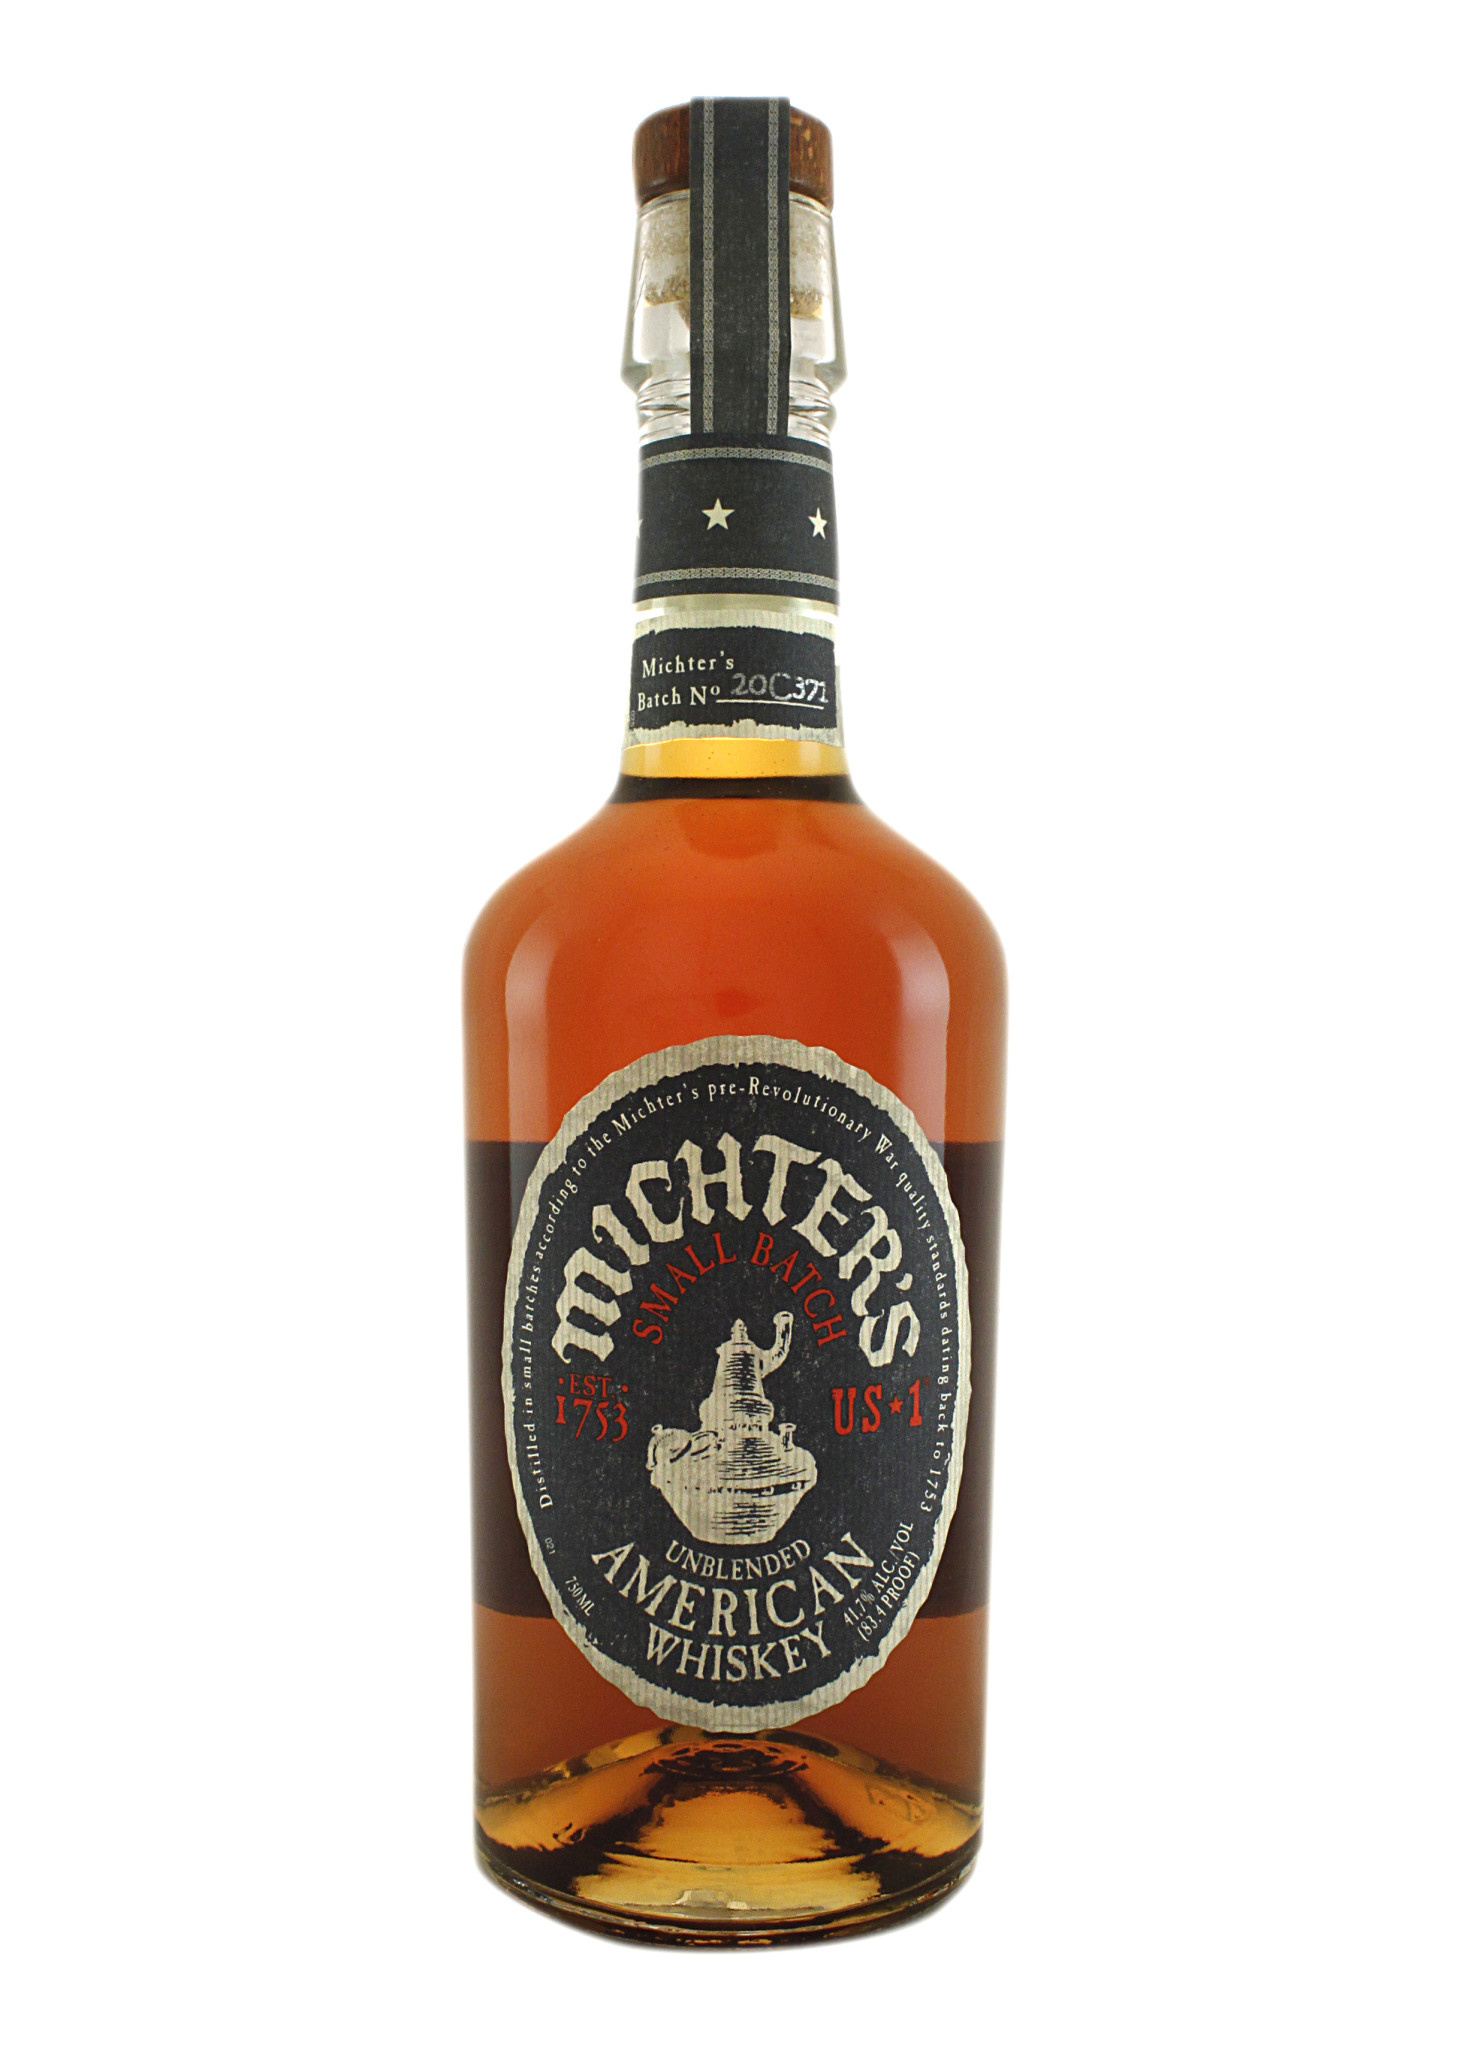 Michter's Small Batch Unblended American Whiskey, Louisville, Kentucky